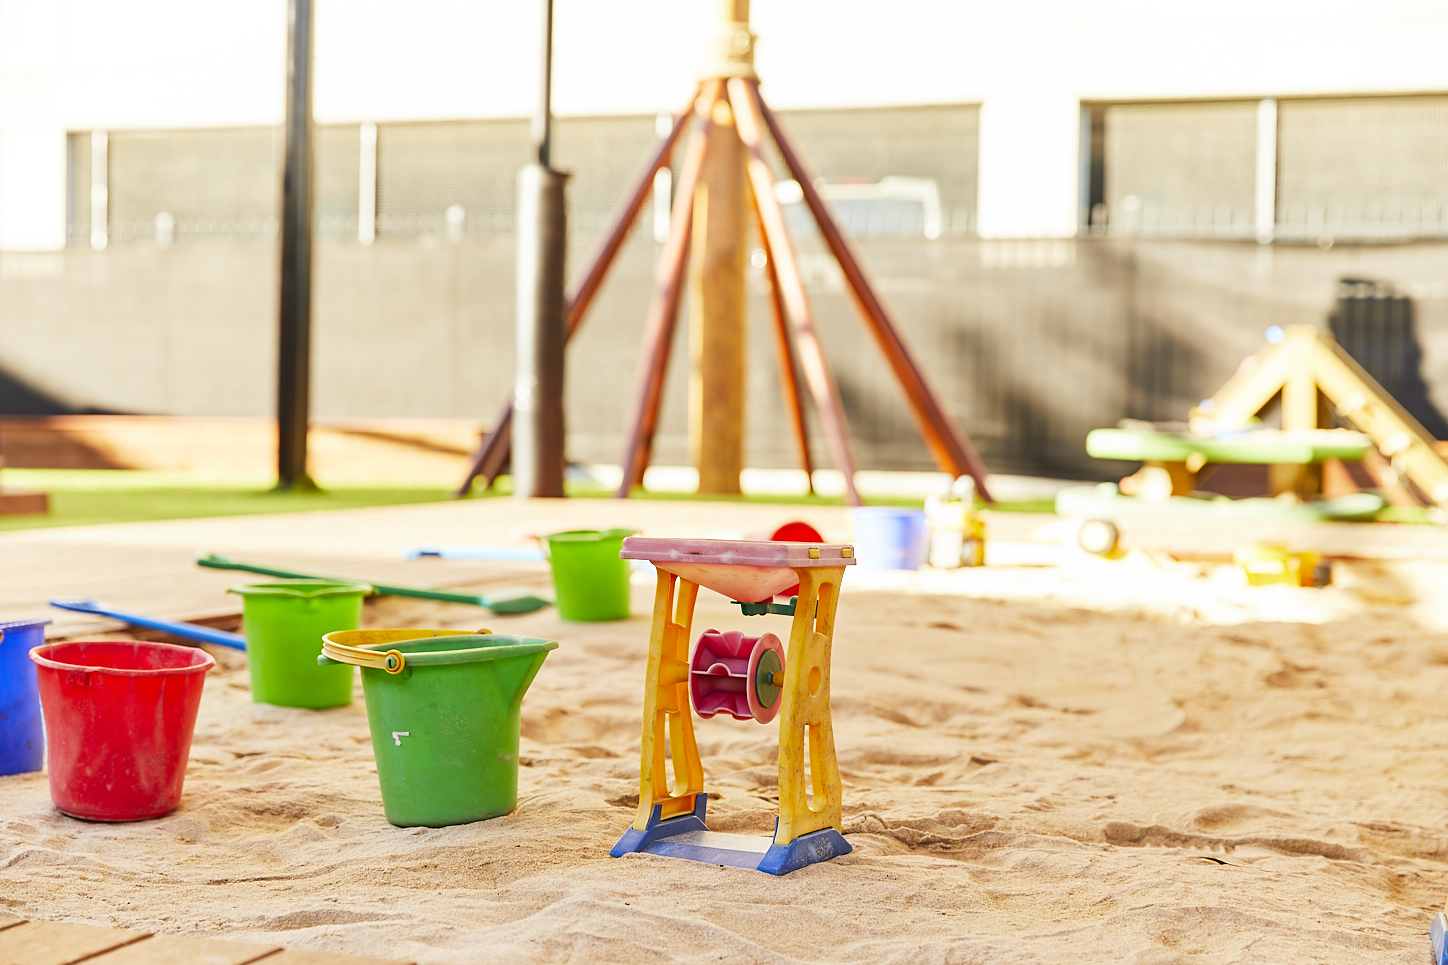 Sand toys in sandpit at child care centre